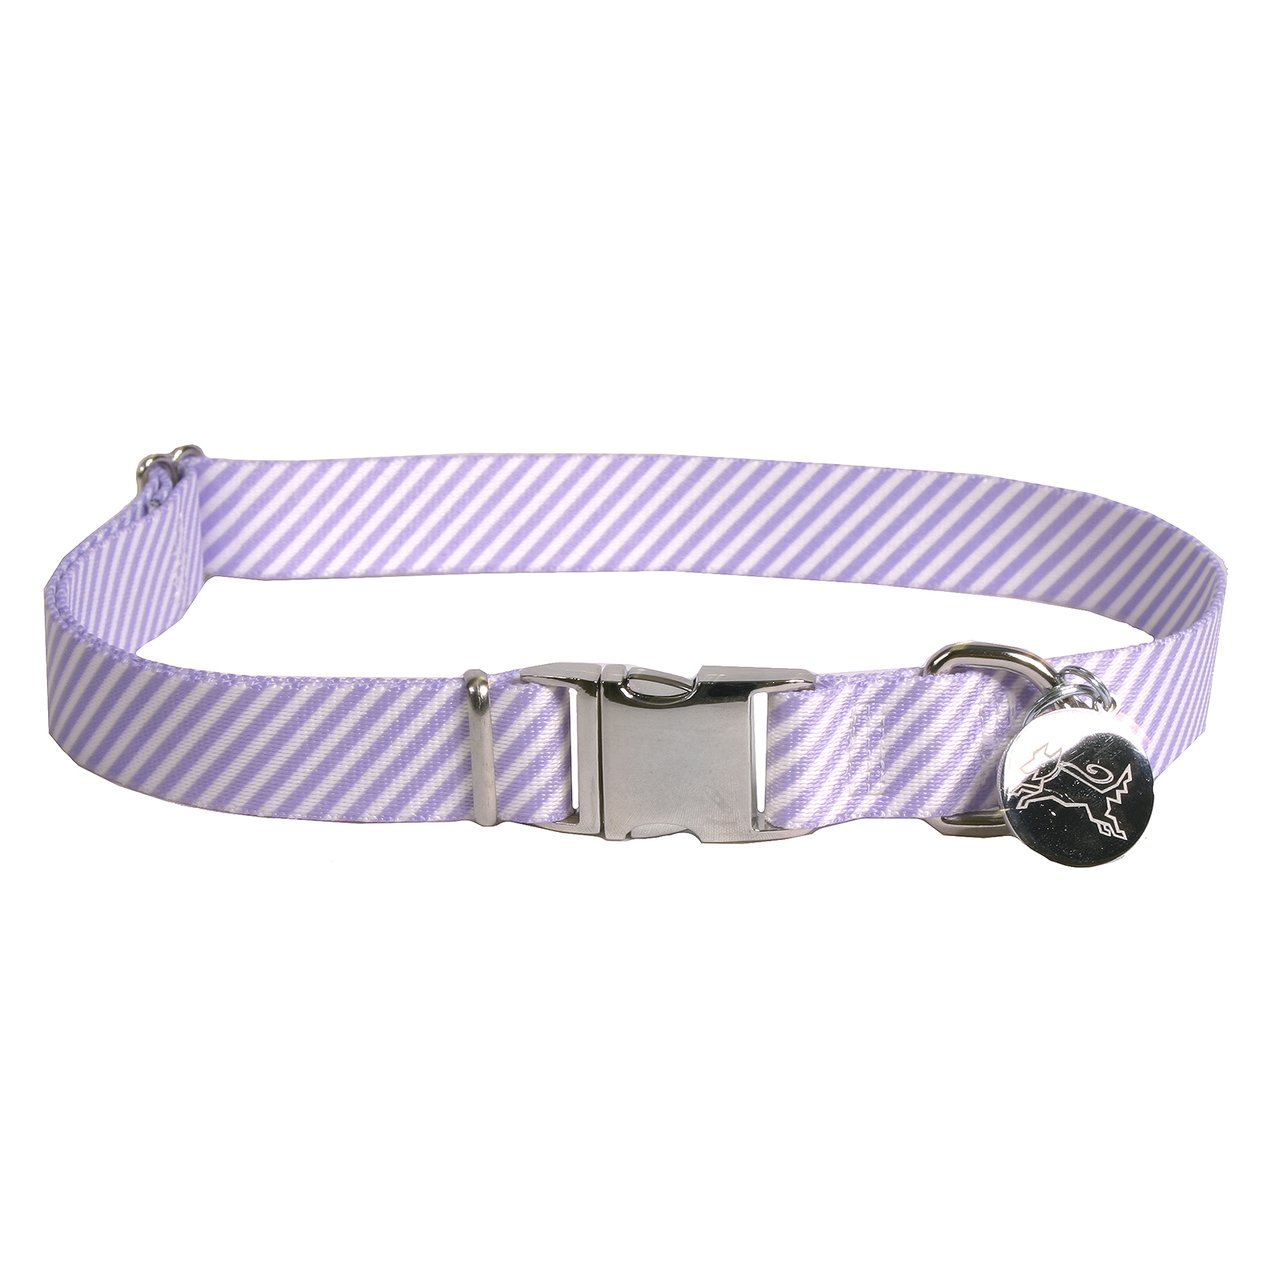 Southern Dawg Seersucker Striped Premium Dog Collar, Purple - Medium 14-20'' length x 3/4'' wide